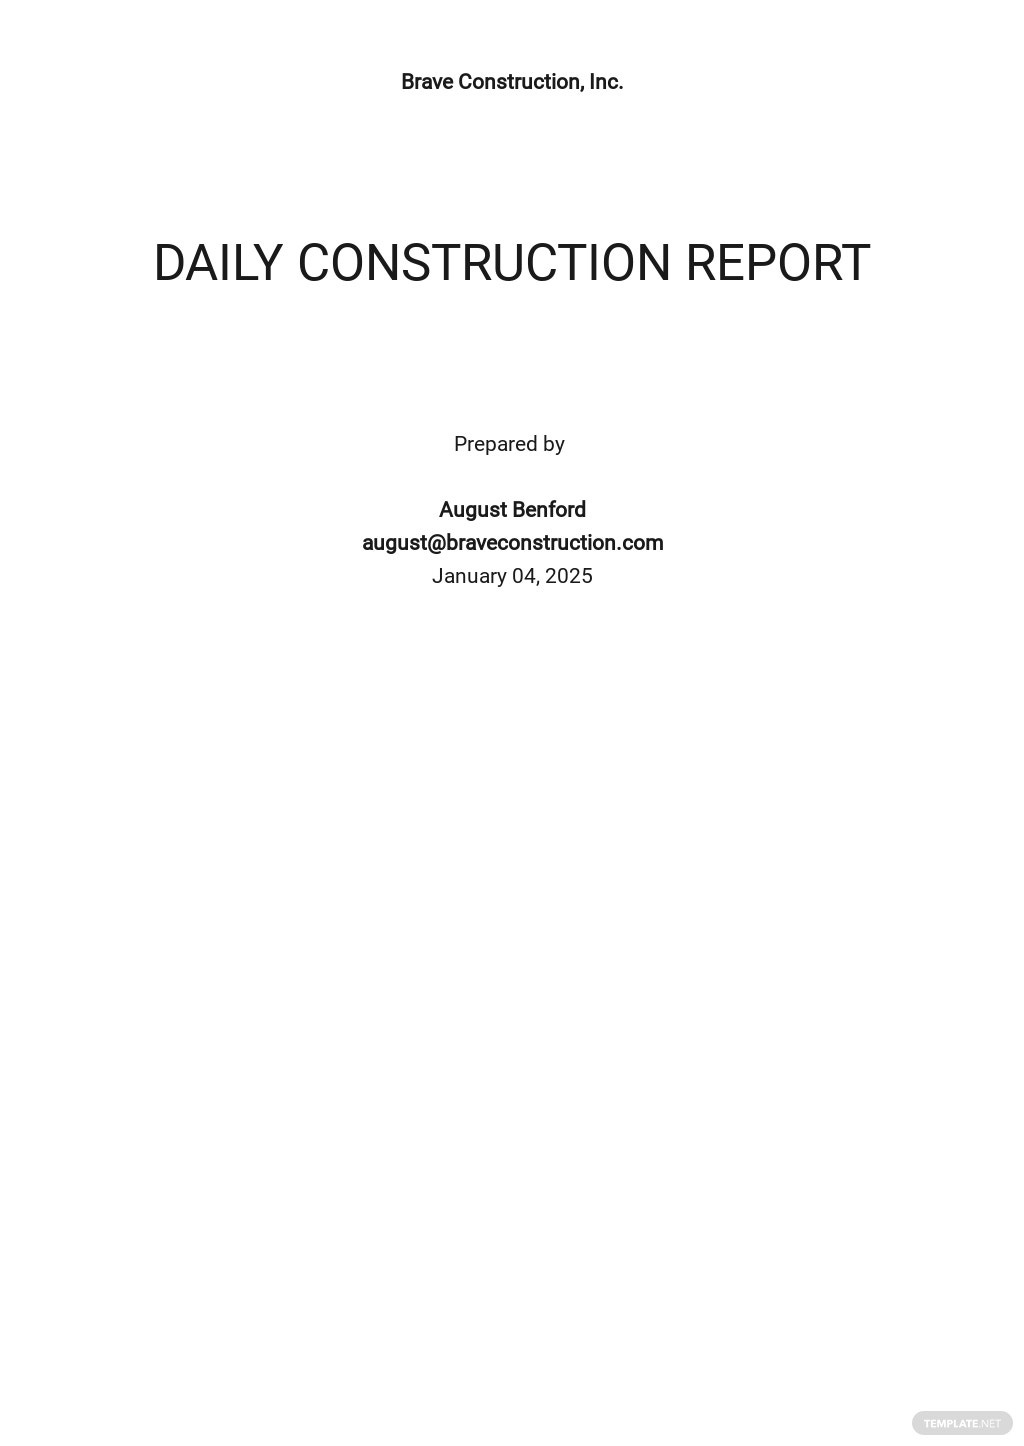 Daily Construction Report Template [Free PDF] - Google Docs, Word